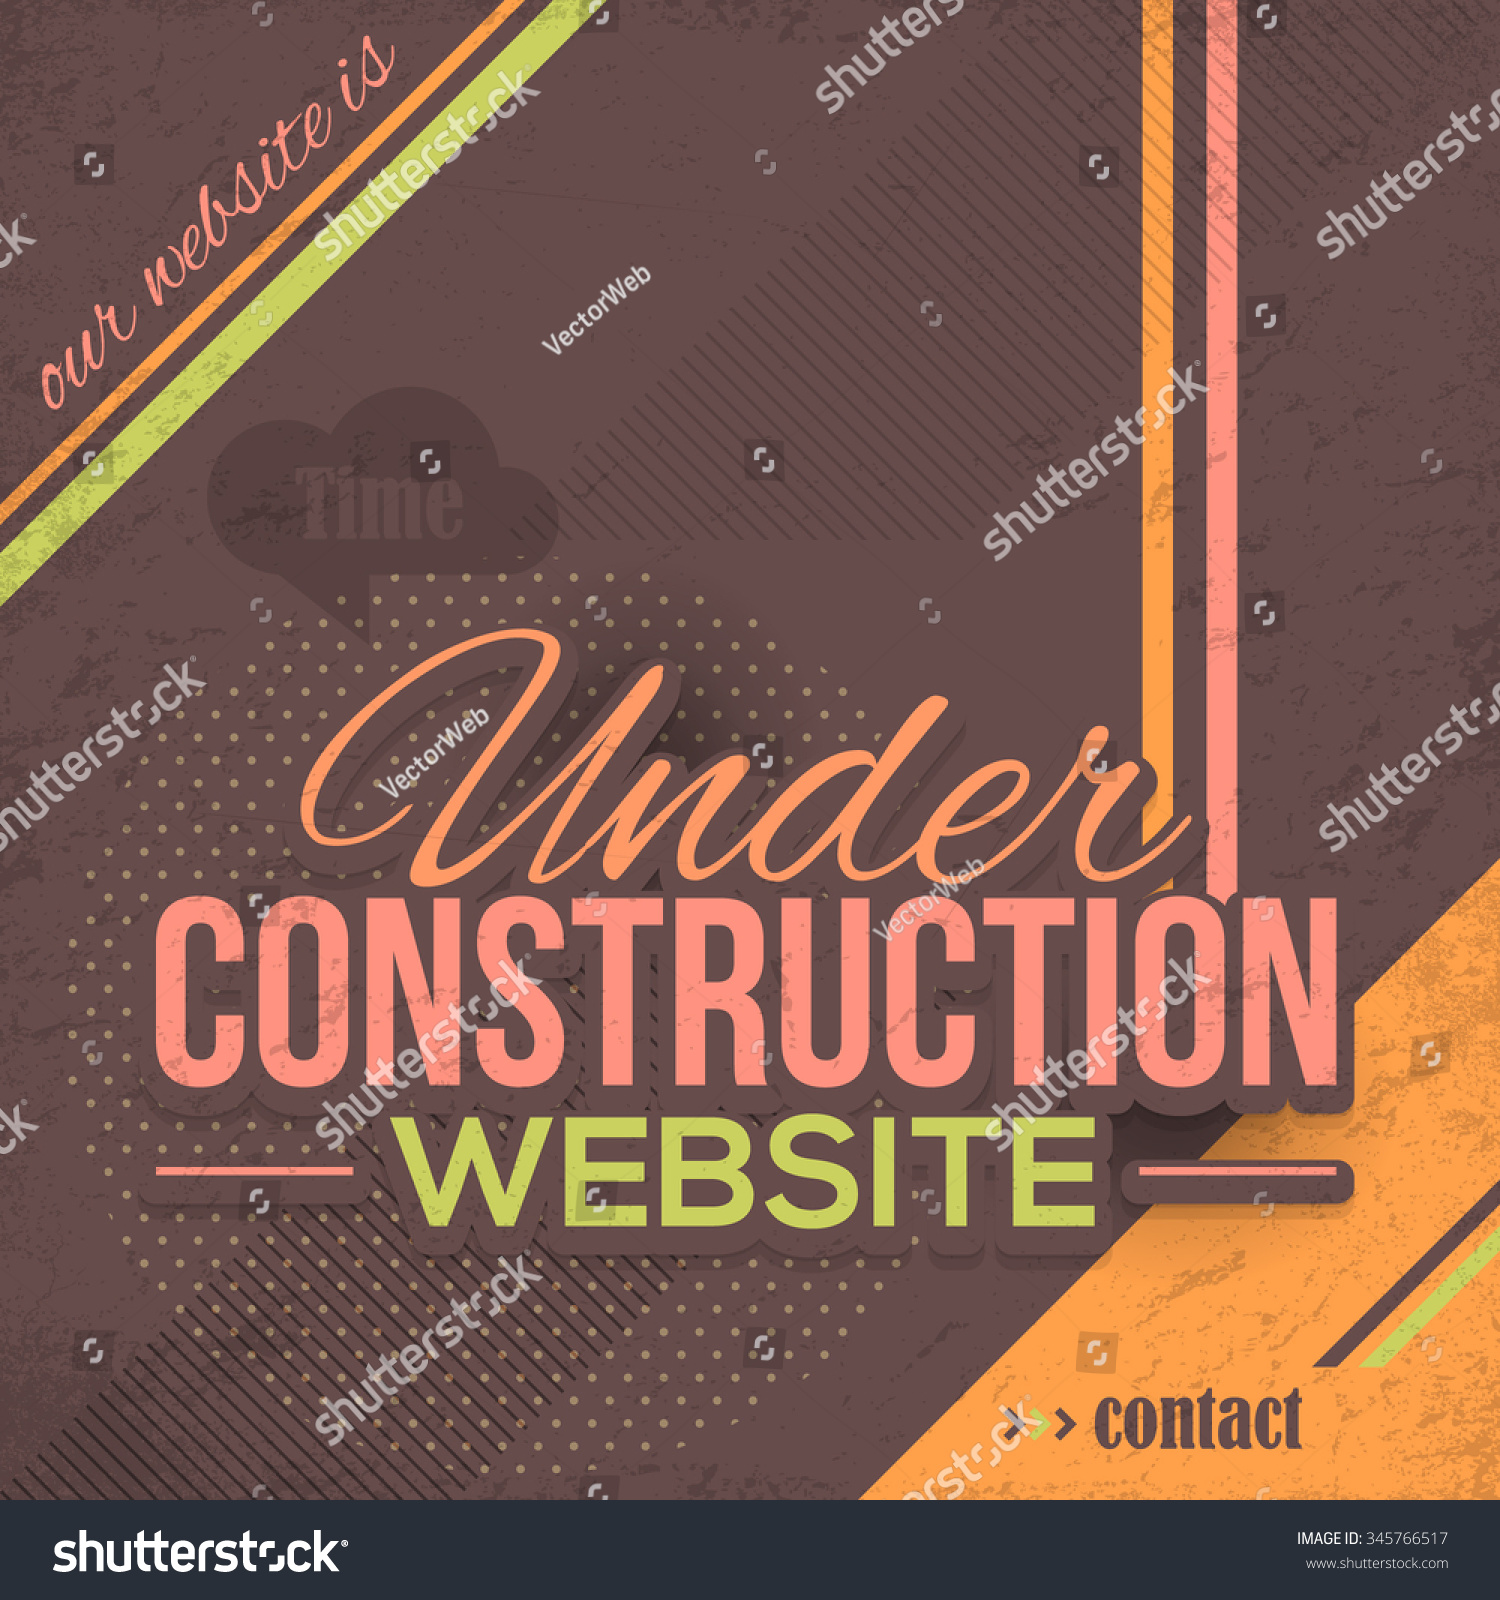 Geomotric Grunge Background Website Under Construction Stock Vector Royalty Free 345766517